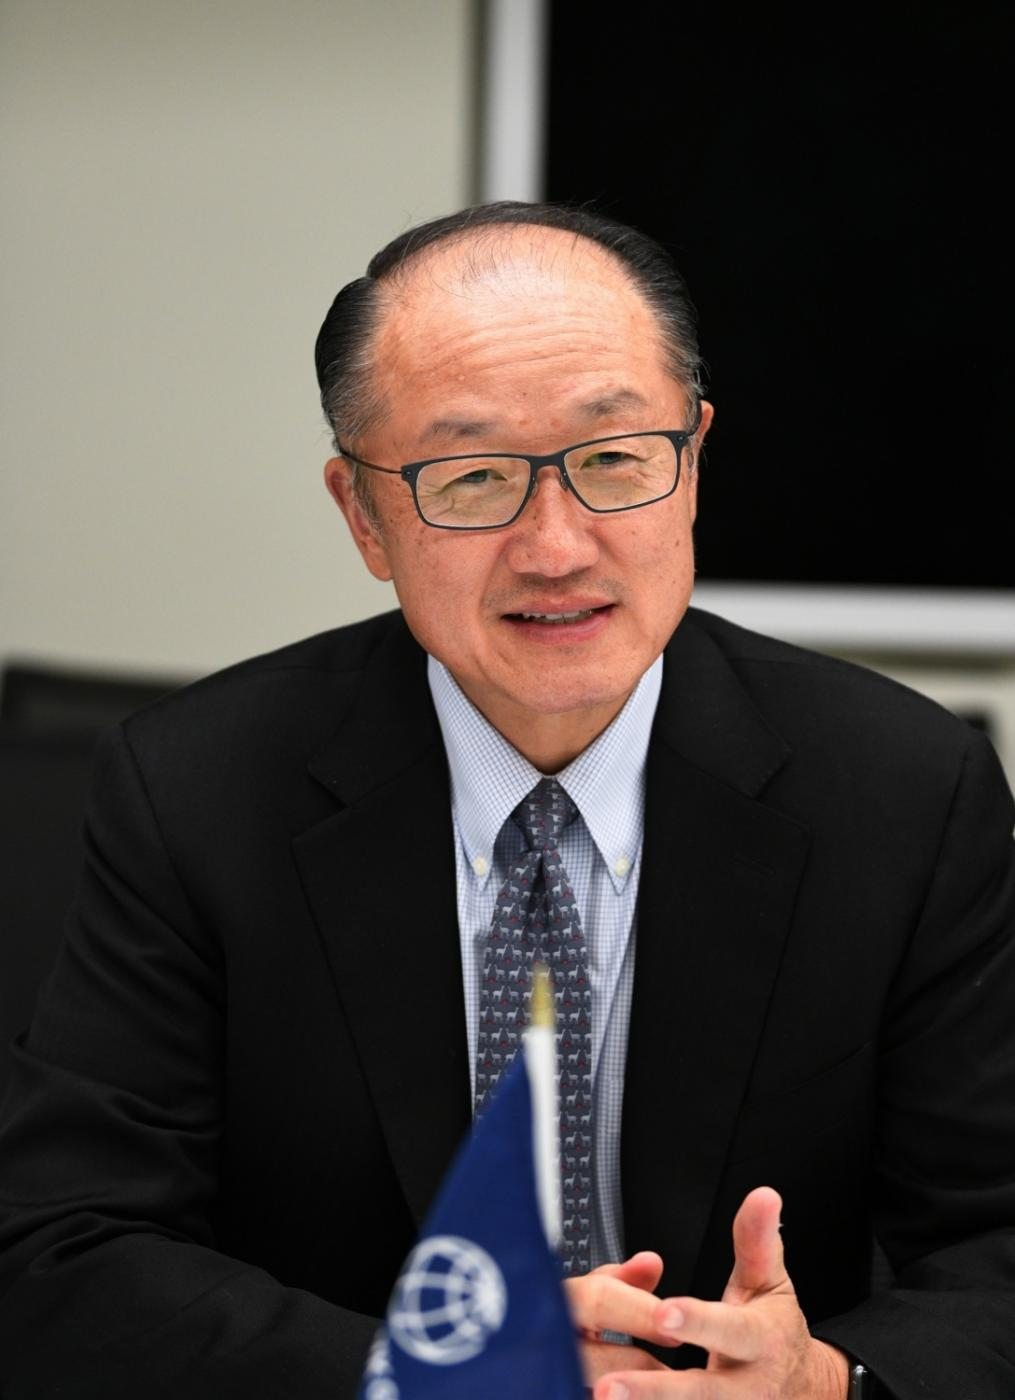 WASHINGTON D.C., Oct. 31, 2018 (Xinhua) -- World Bank Group (WBG) President Jim Yong Kim talks with journalists with Xinhua in Washington D.C., the United States on Oct. 29, 2018. China's reform and opening-up over the past 40 years has transformed the country into the world's second largest economy and provided valuable lessons for other developing countries to achieve economic success and alleviate poverty, World Bank Group (WBG) President Jim Yong Kim has said. (Xinhua/Liu Jie/IANS) by .